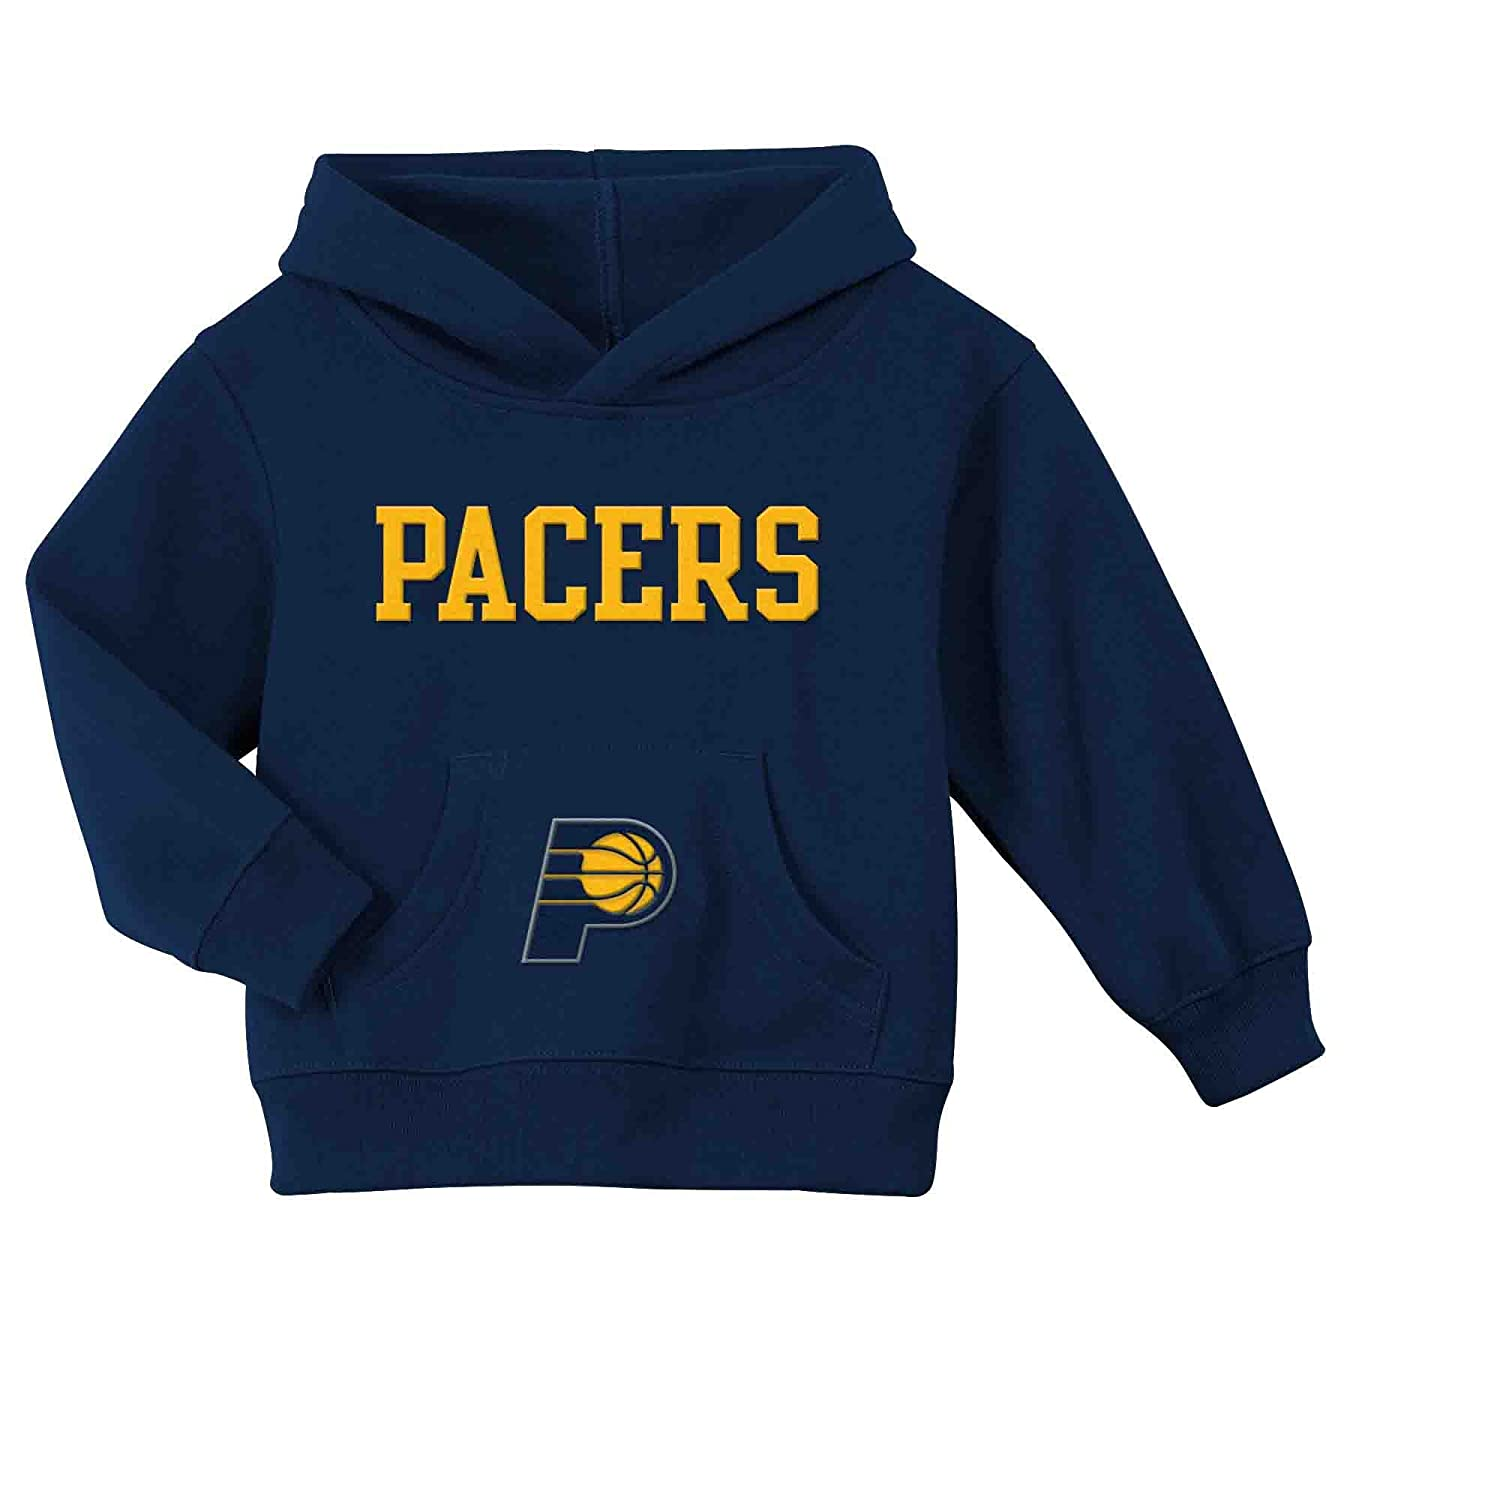 Outerstuff NBA Indiana Pacers Toddler Hoodie